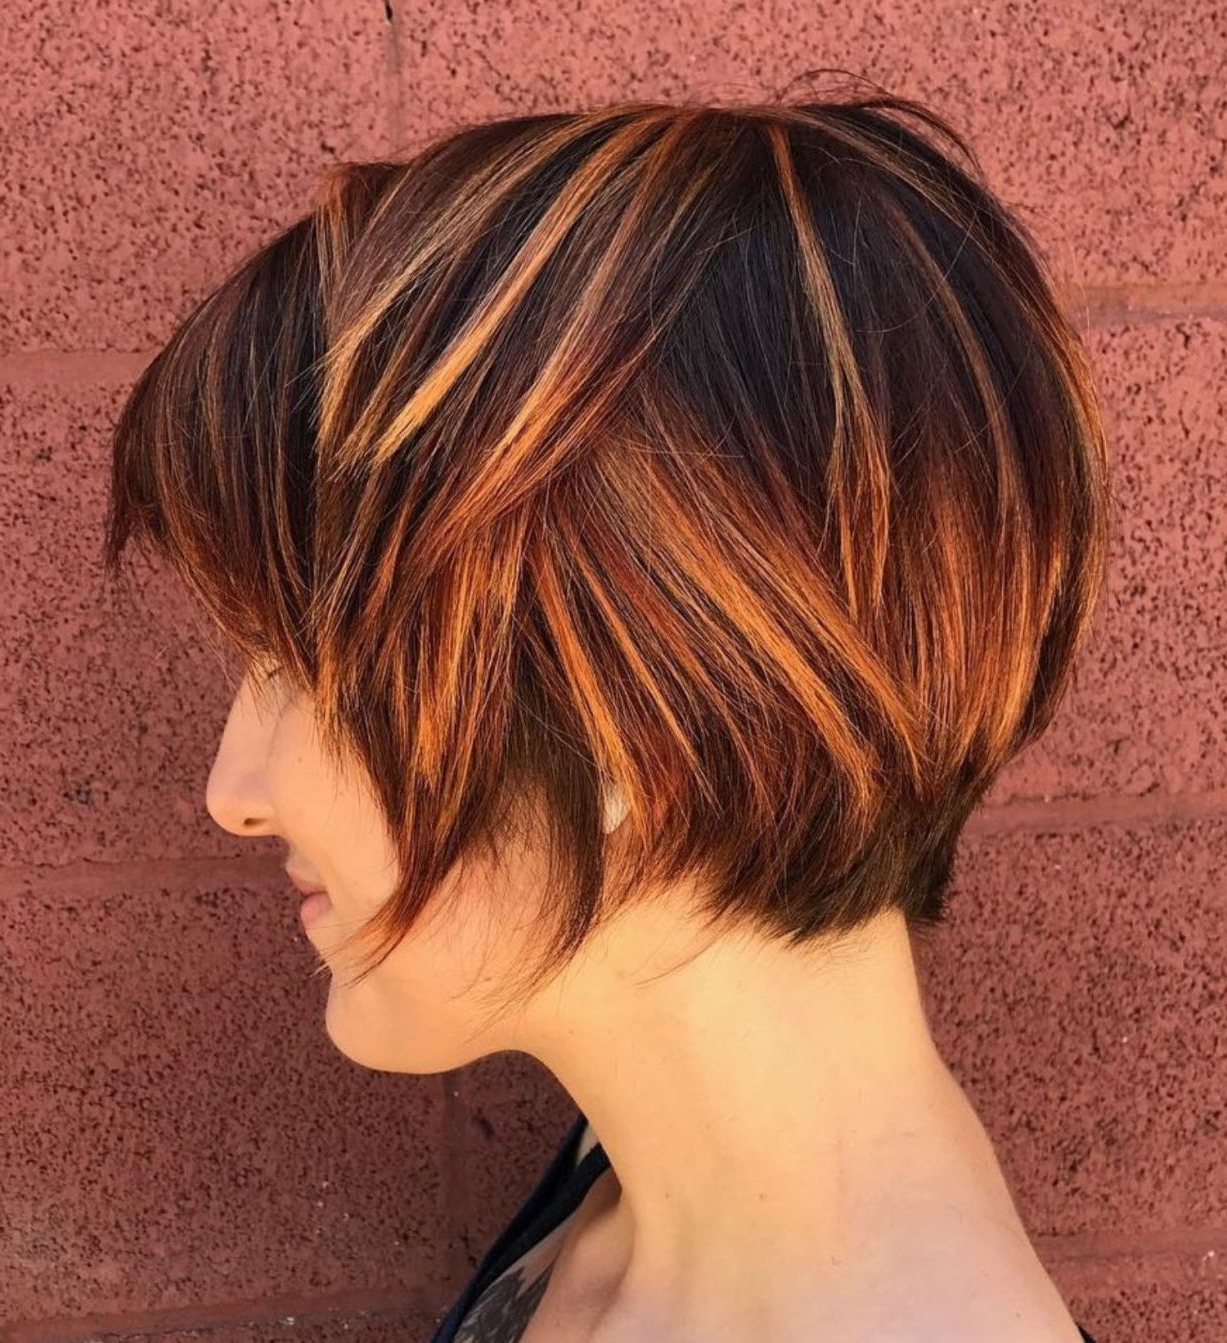 70 Cute And Easy To Style Short Layered Hairstyles In 2019 With Regard To Highlighted Short Bob Haircuts (Gallery 3 of 20)